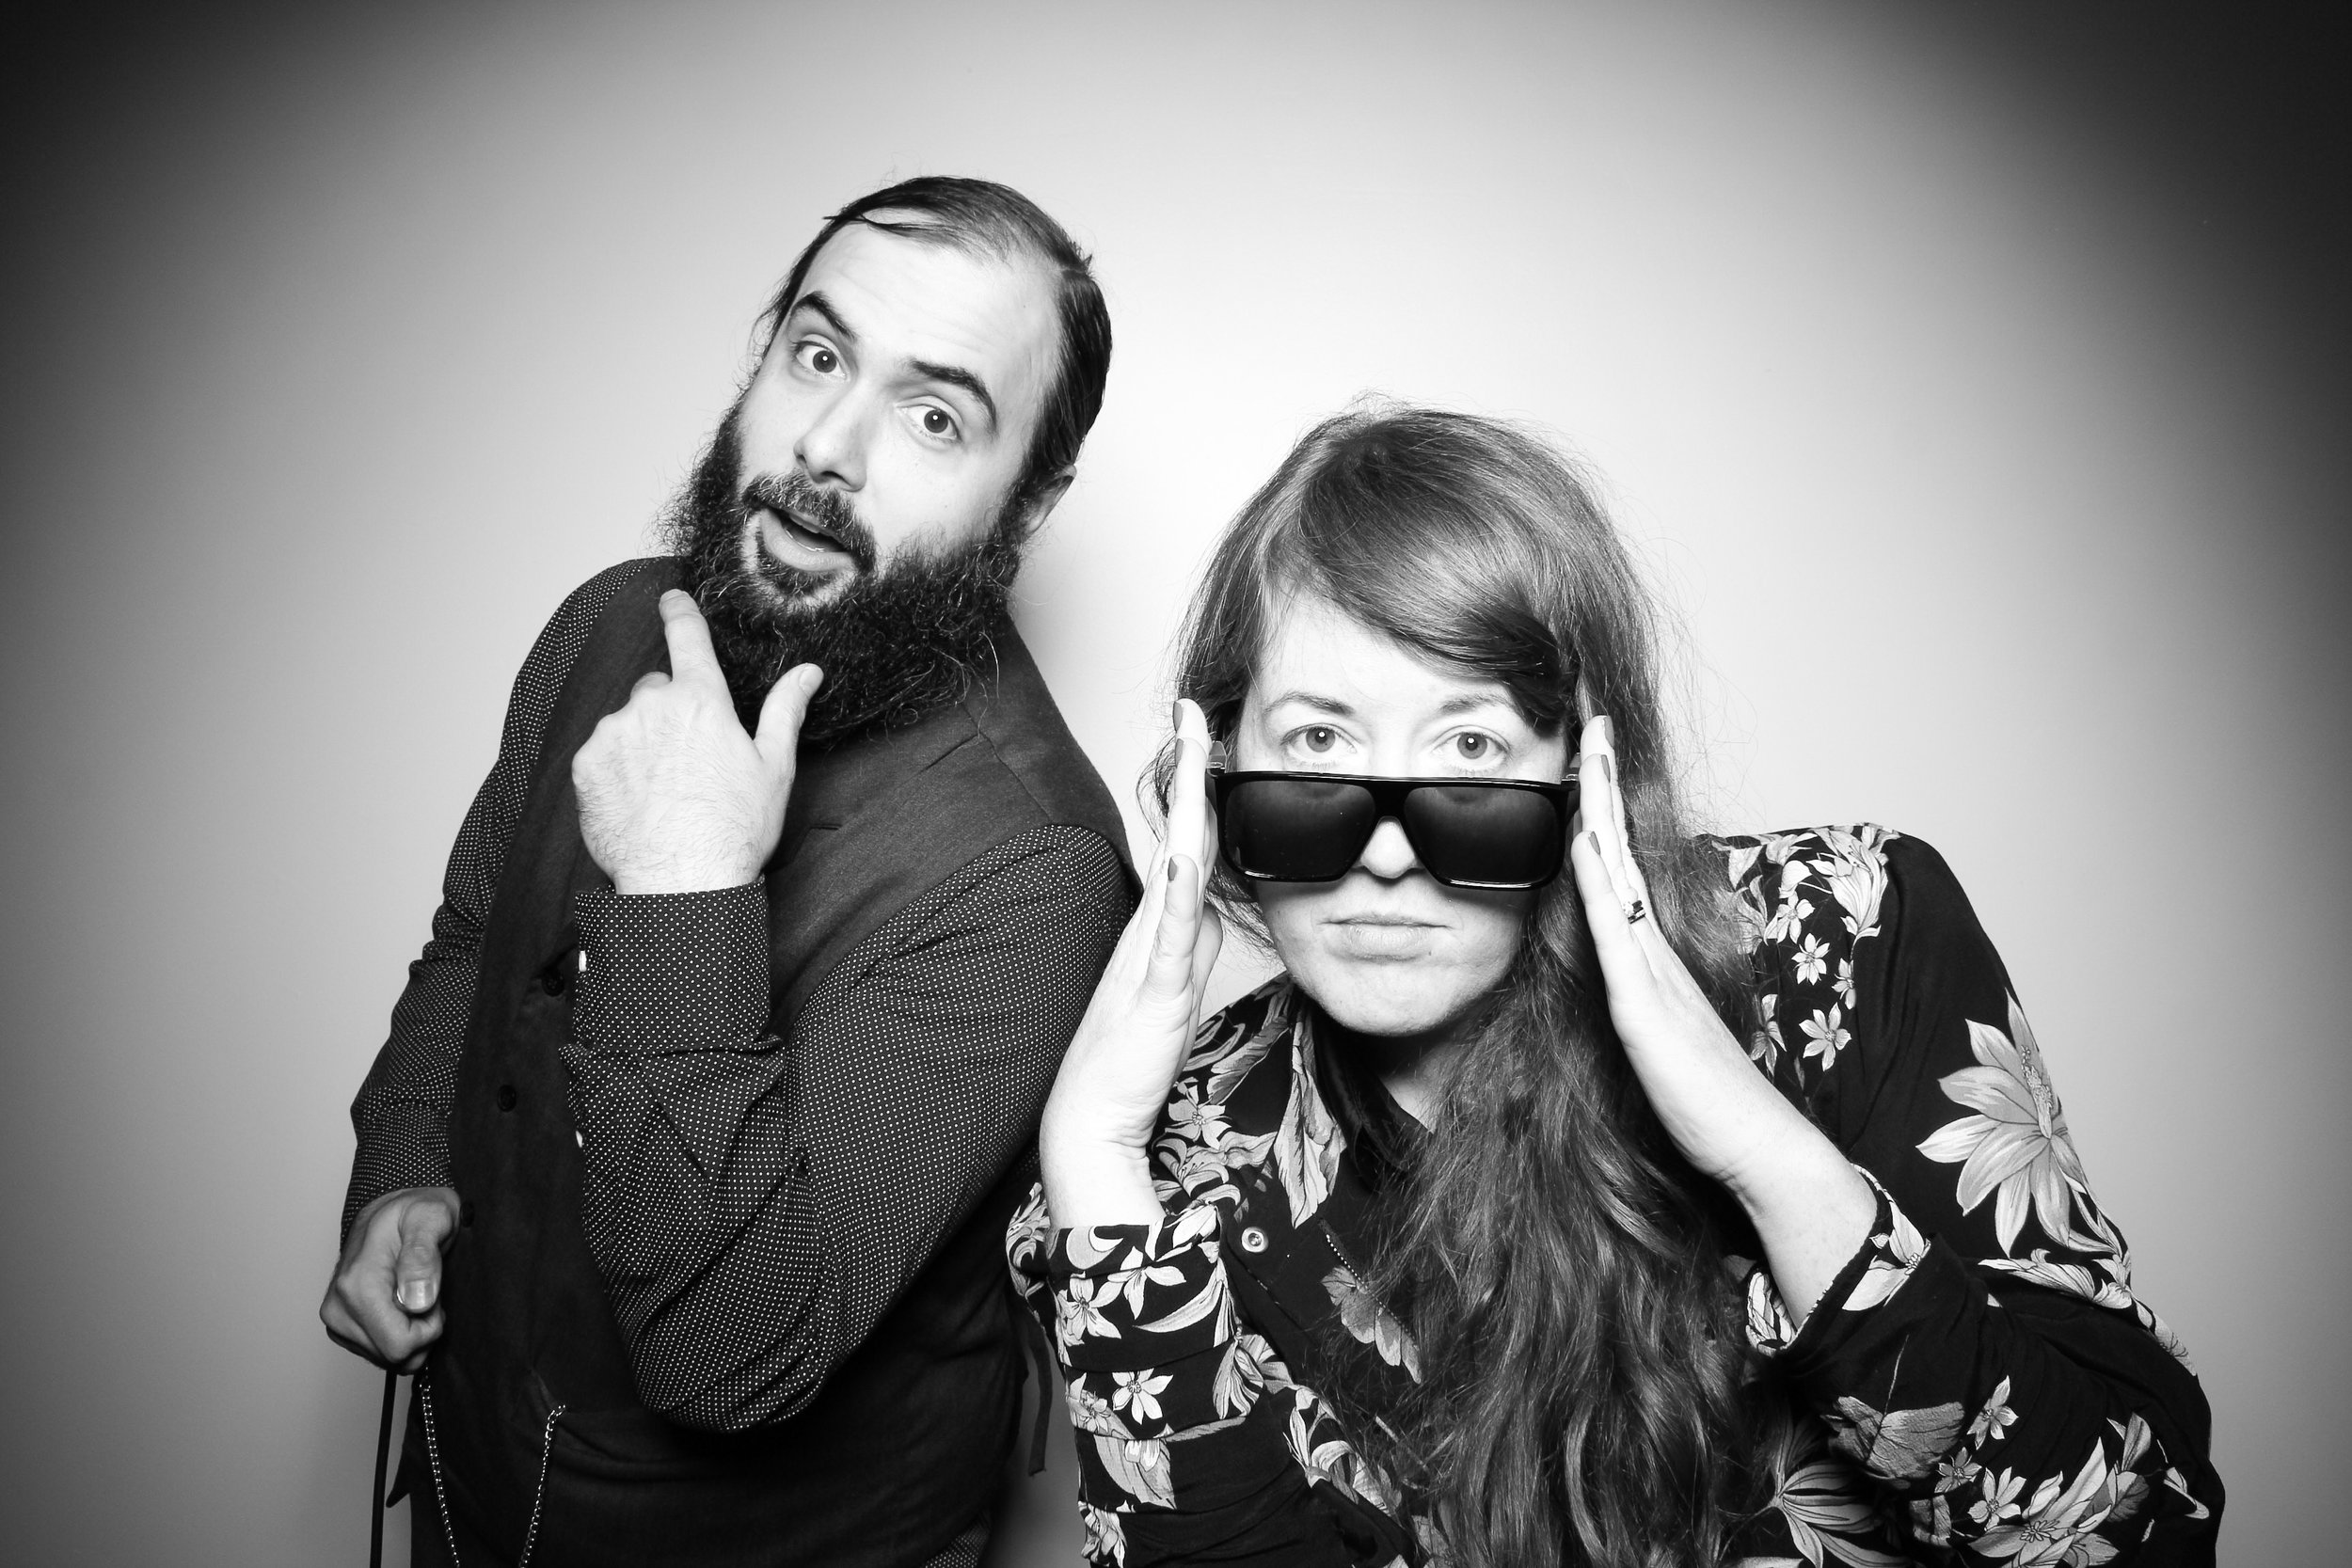 Venue_West_J&L_Catering_Chicago_Photo_Booth_Vitnage__01.jpg